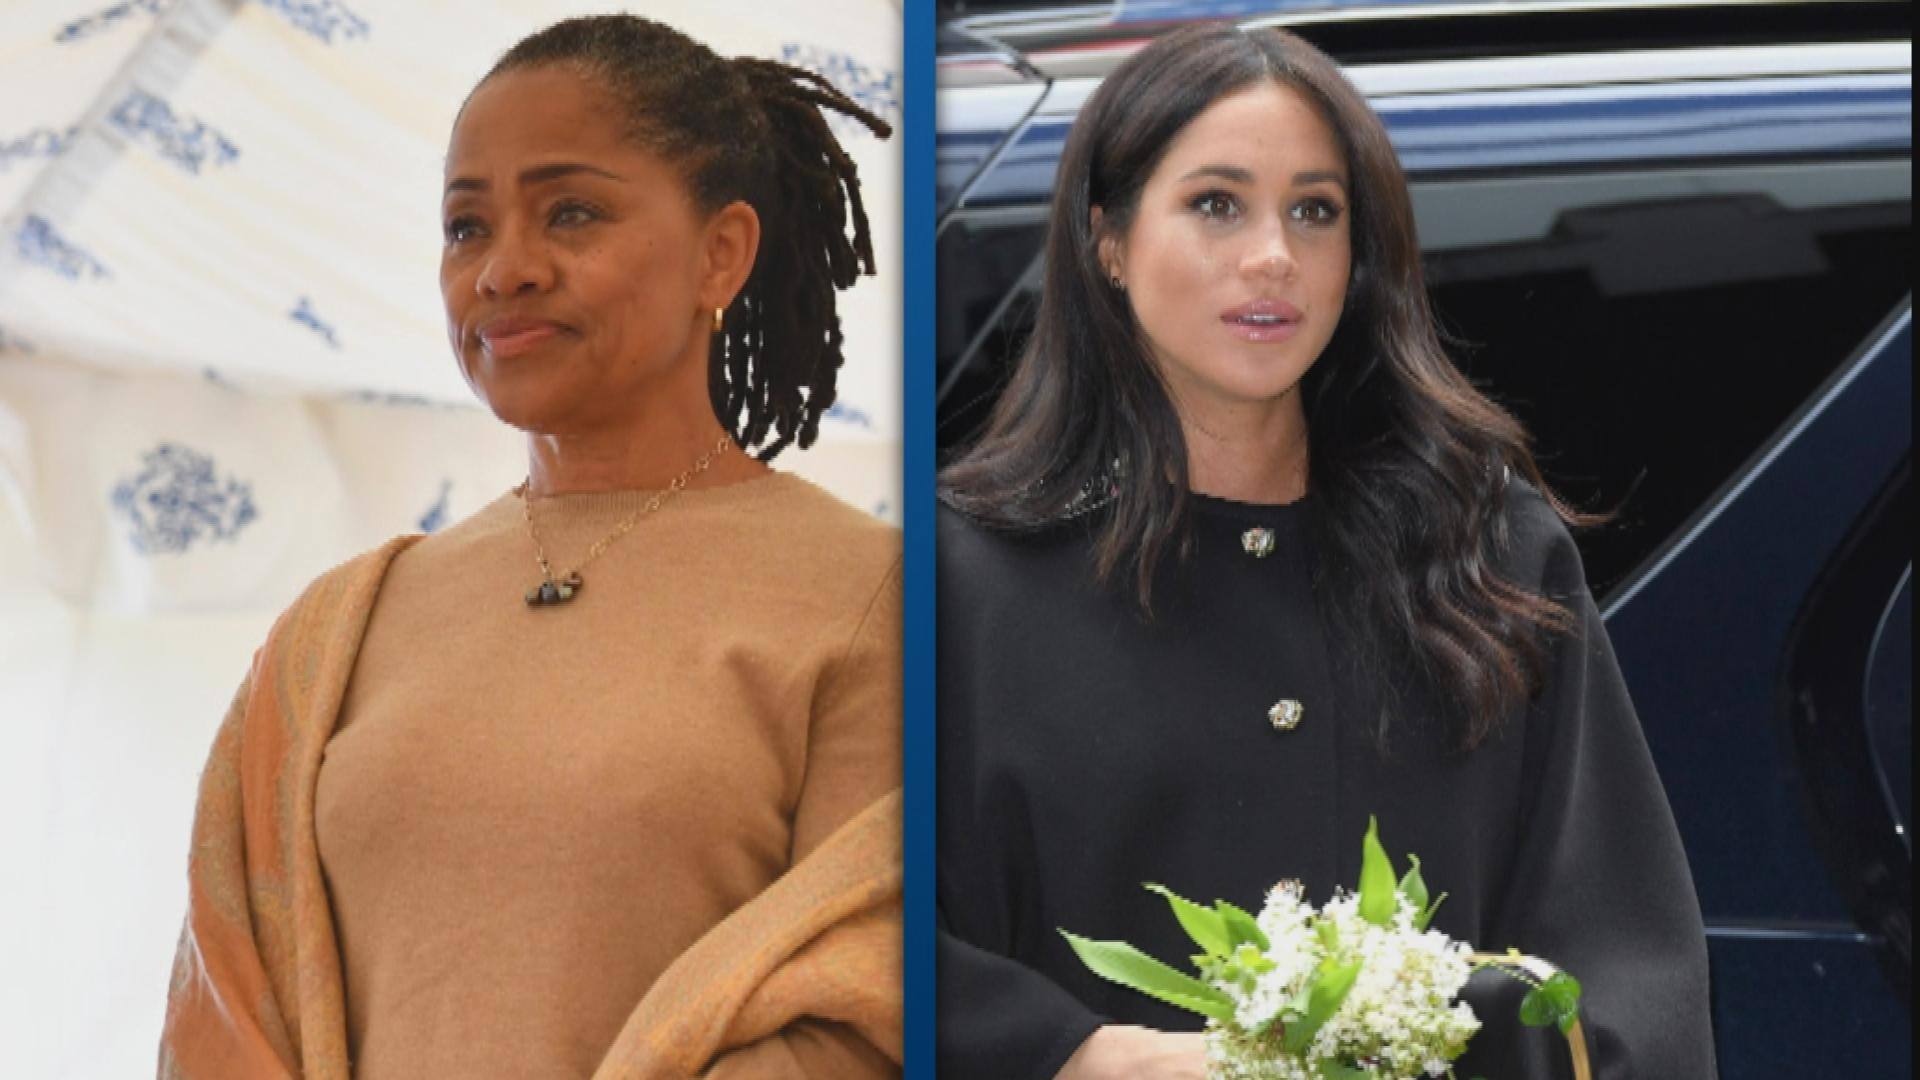 The unusual place Meghan Markle's parents got married